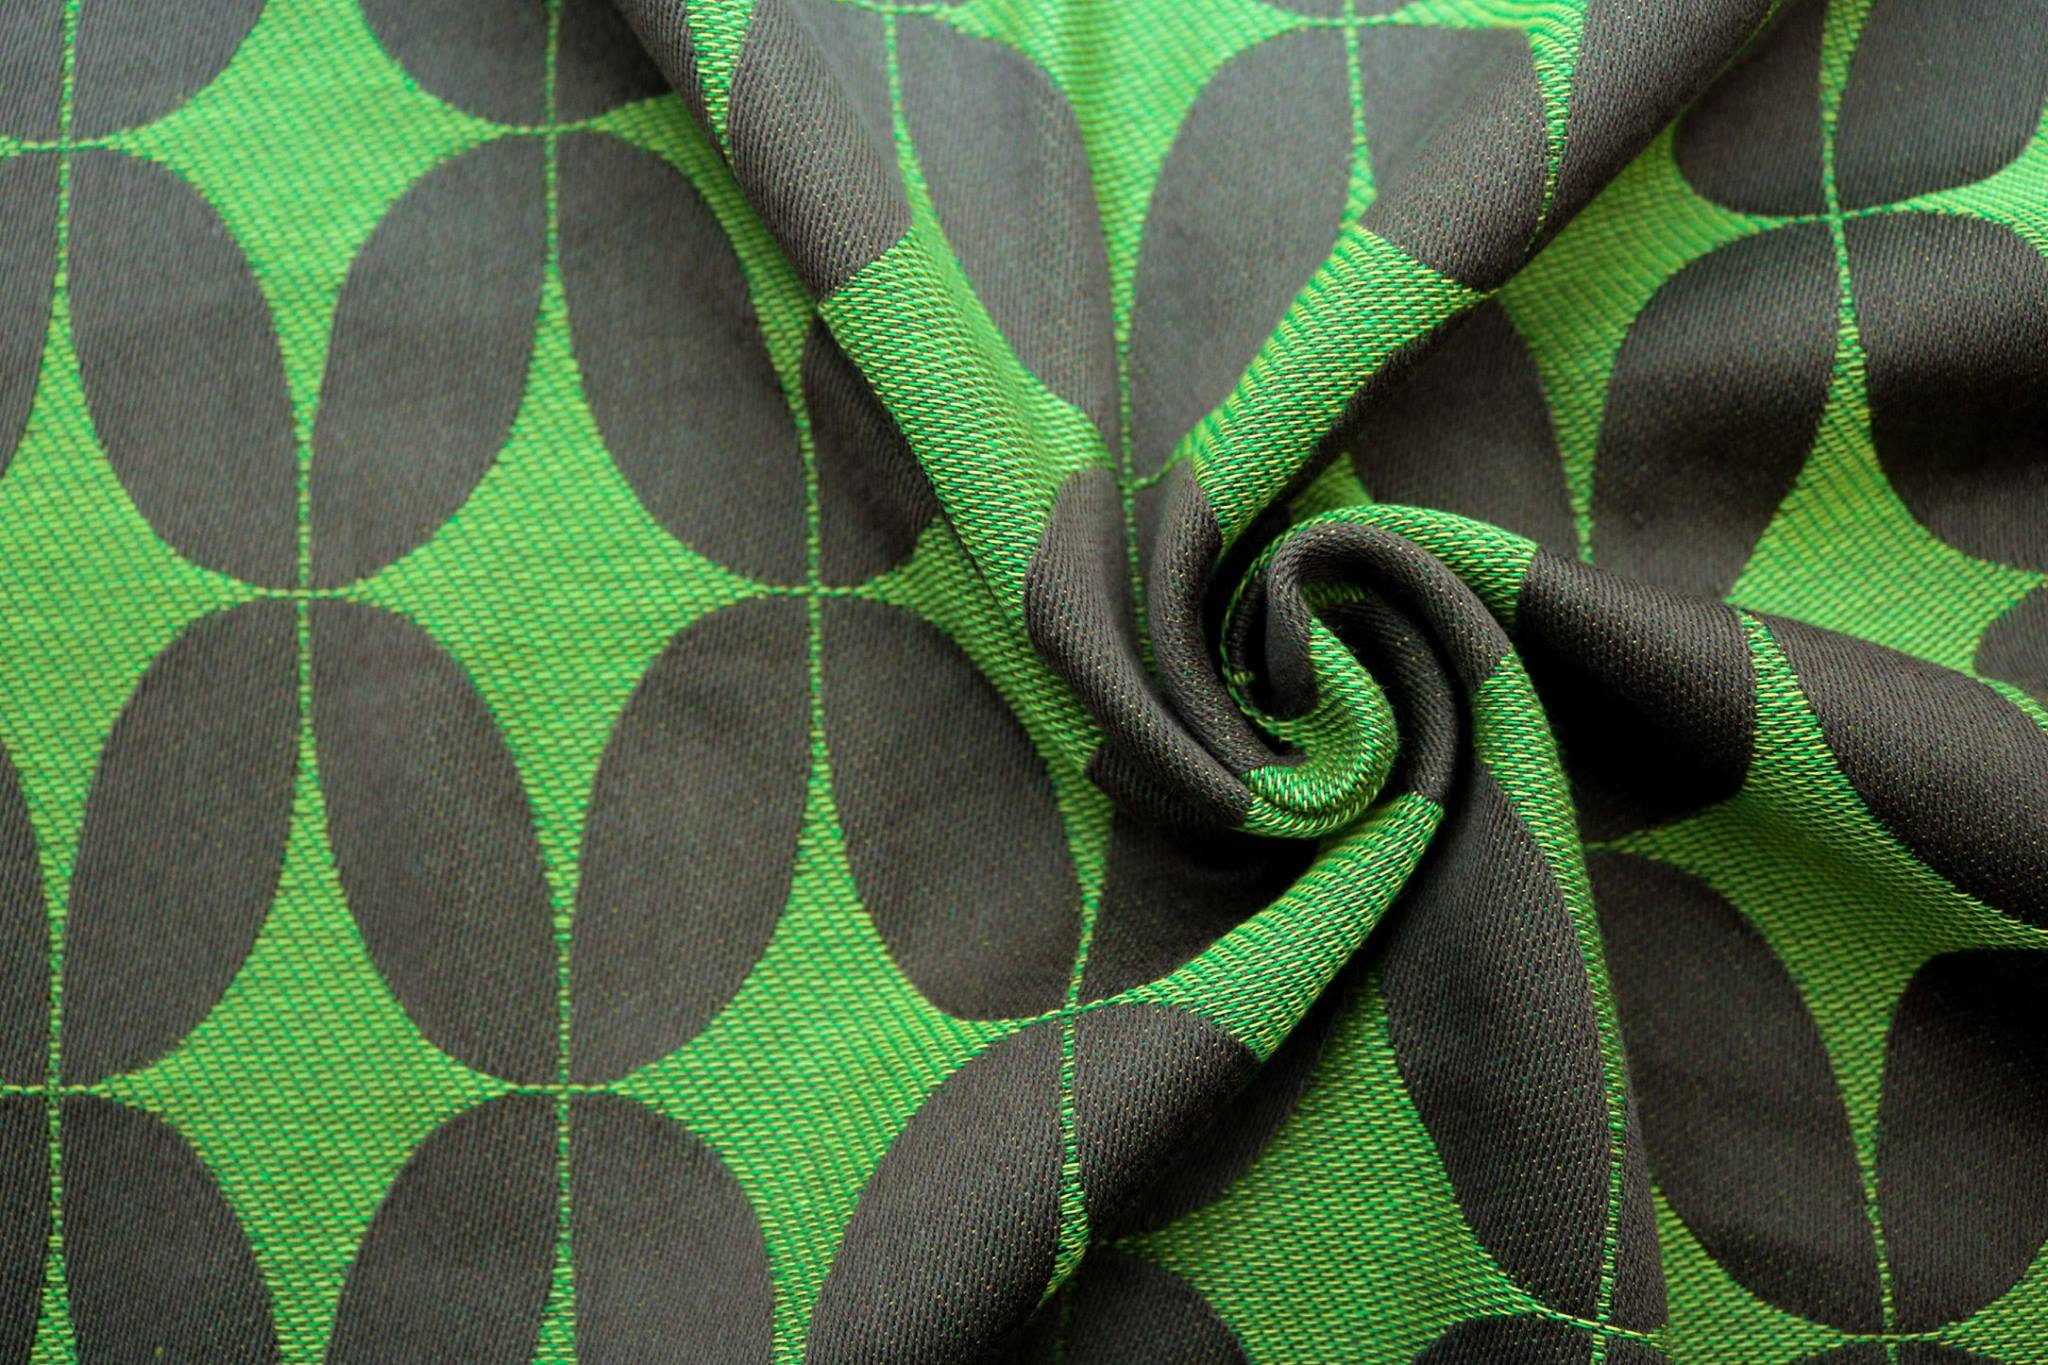 KindsKnopf TulpenStern TS Green Eyes Wrap  Image